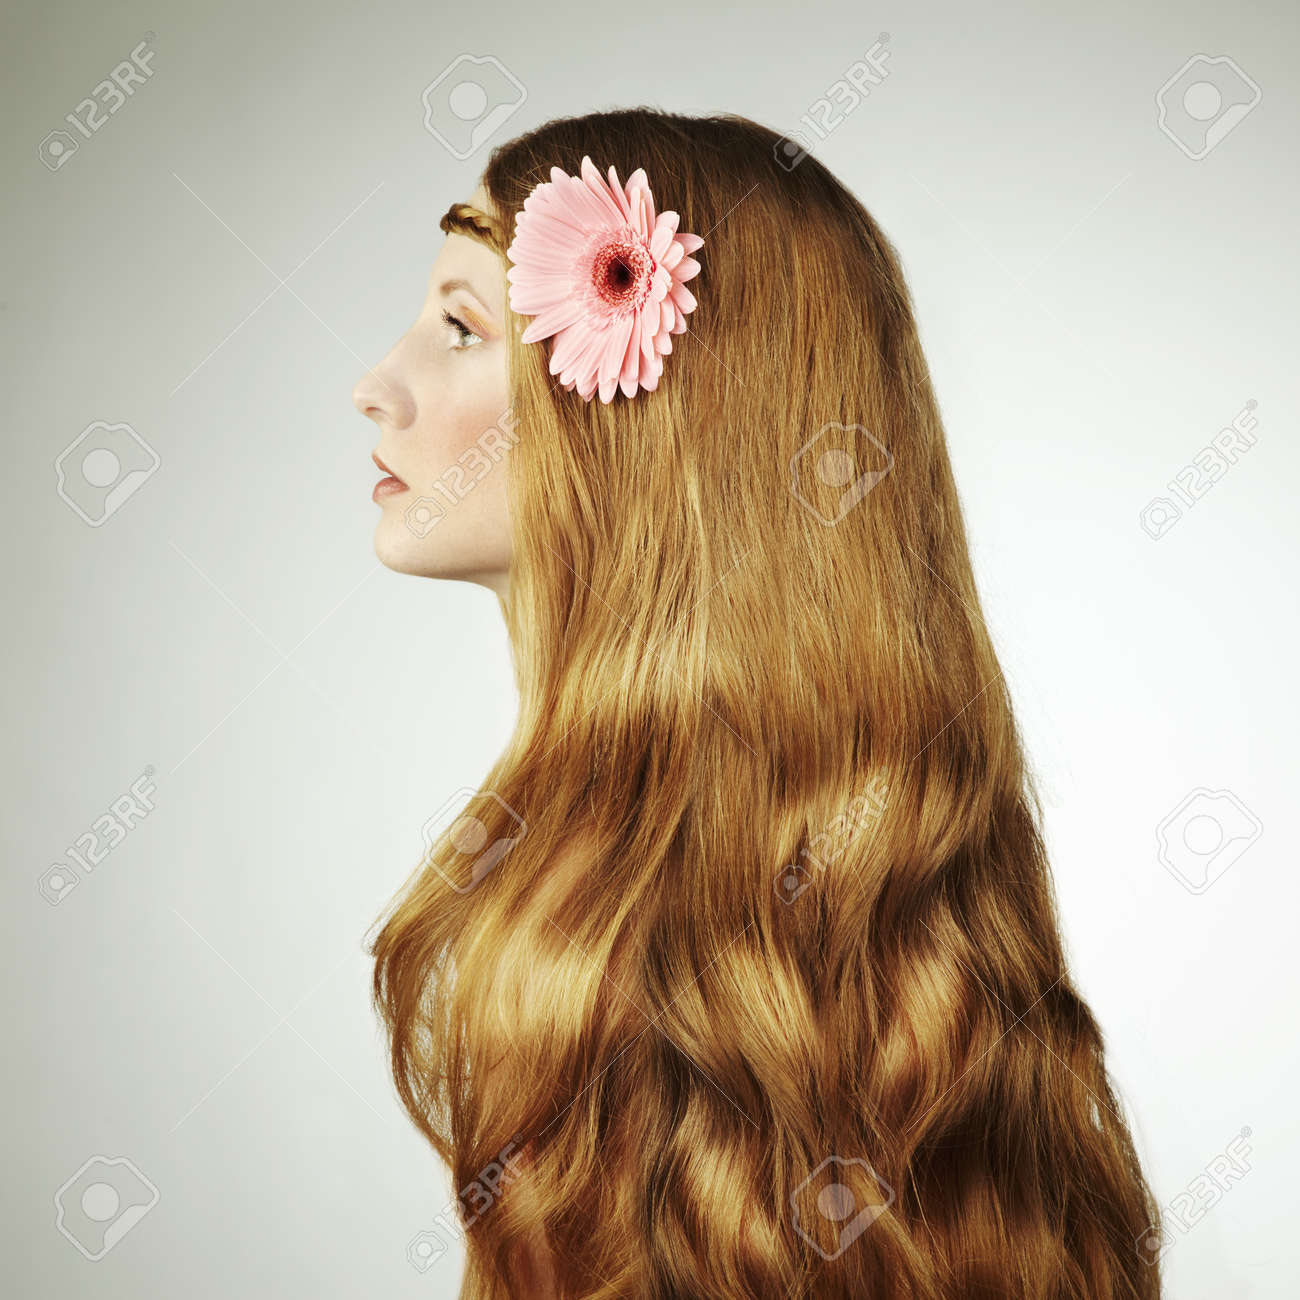 Portrait of young beautiful woman with long magnificent hair  Fashion photo Stock Photo - 12914204